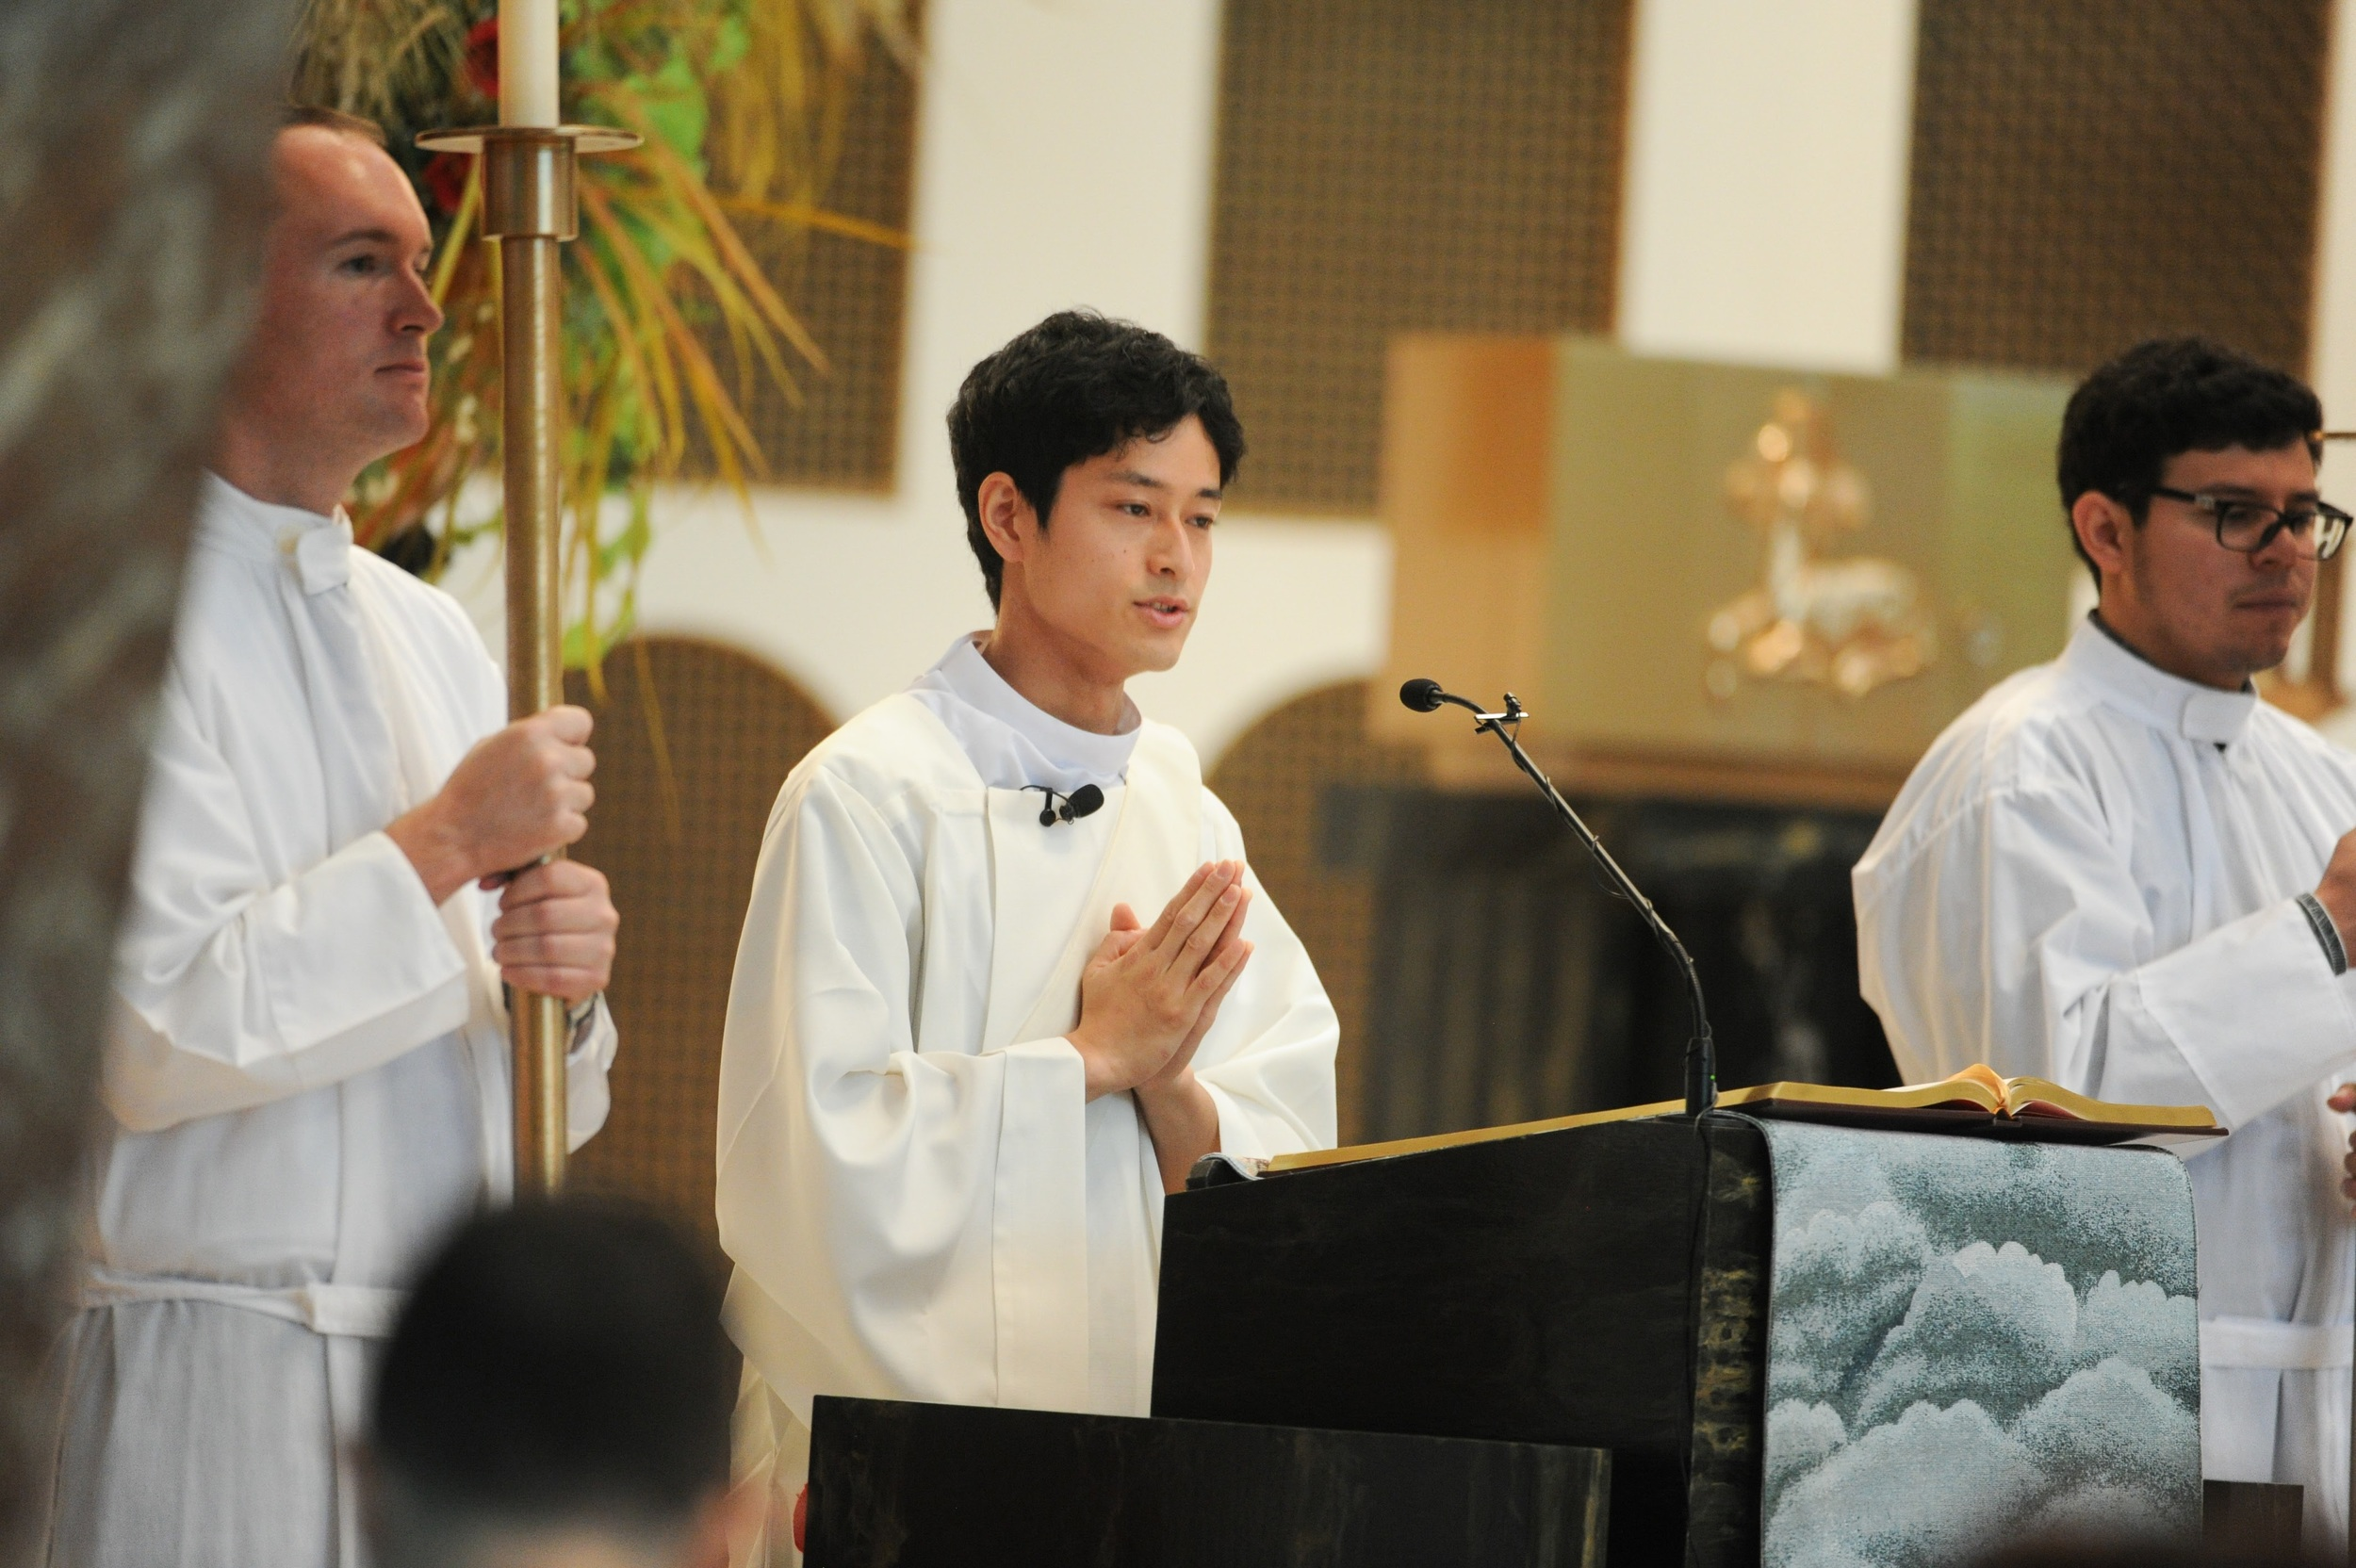 Futoshi Matsuo, O.S.A., was ordained a deacon in July